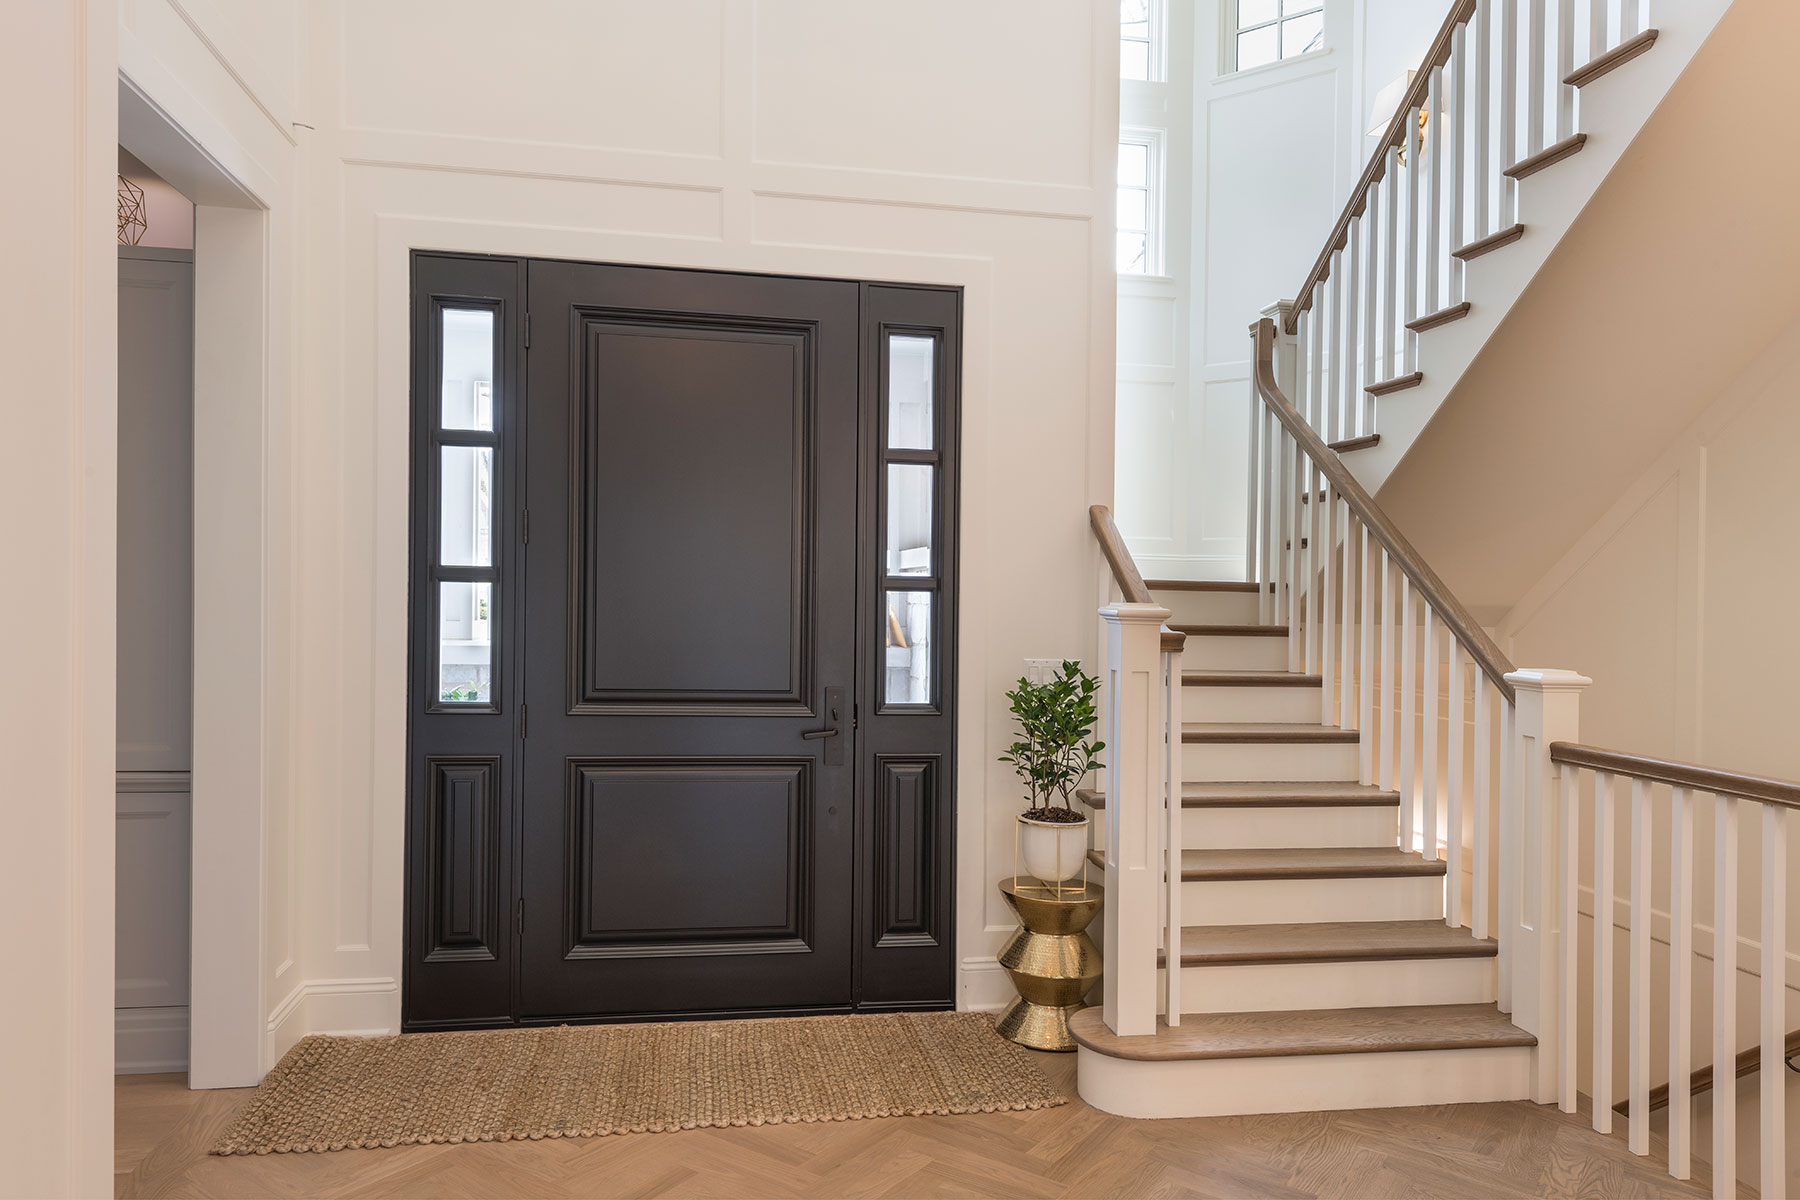 Wood Front Entry Doors in-Stock | two panel classic front entry door, in dark finish, hallway view DB-301PW 2SL - Glenview Doors - Custom Doors in Chicago